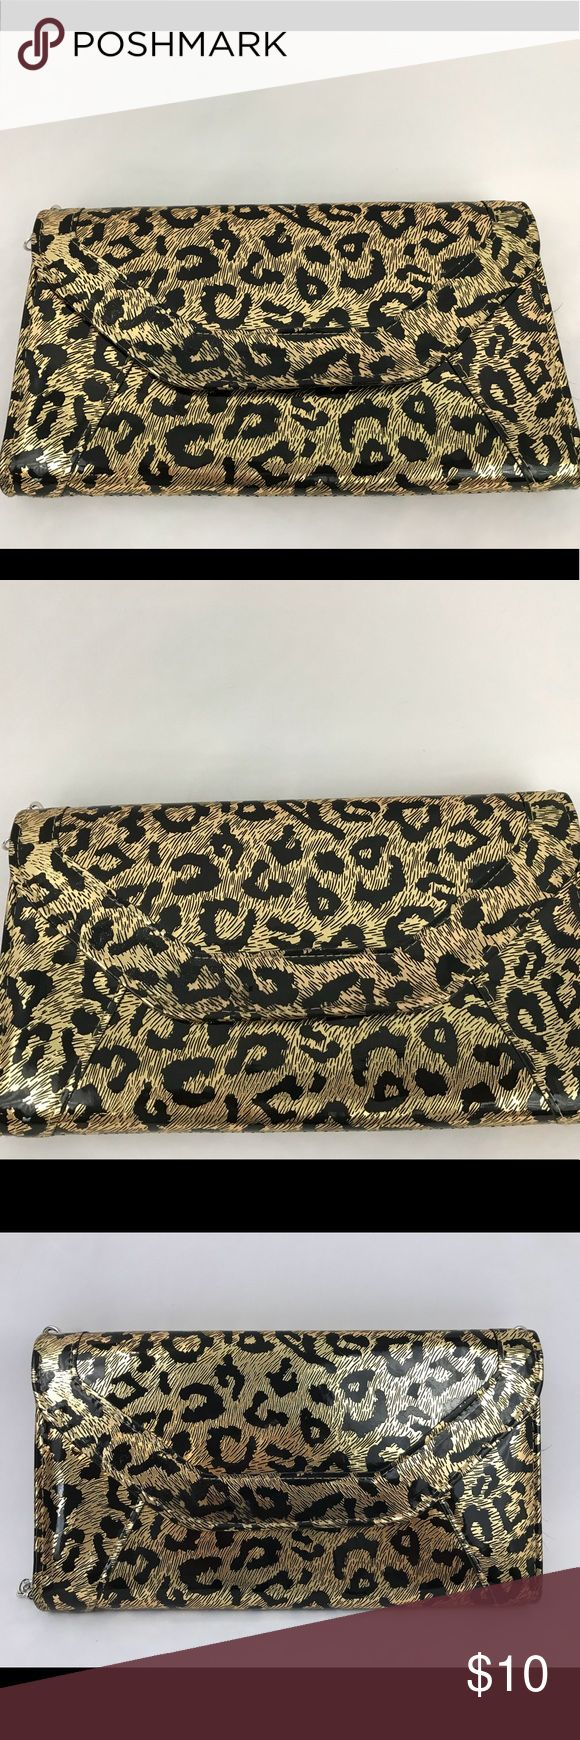 Metallic leopard print clutch with removable strap Adorable clutch with a metallic and leopard print. Comes with a removable chain strap so it can be a shoulder purse as well as a clutch. Bags Clutches & Wristlets